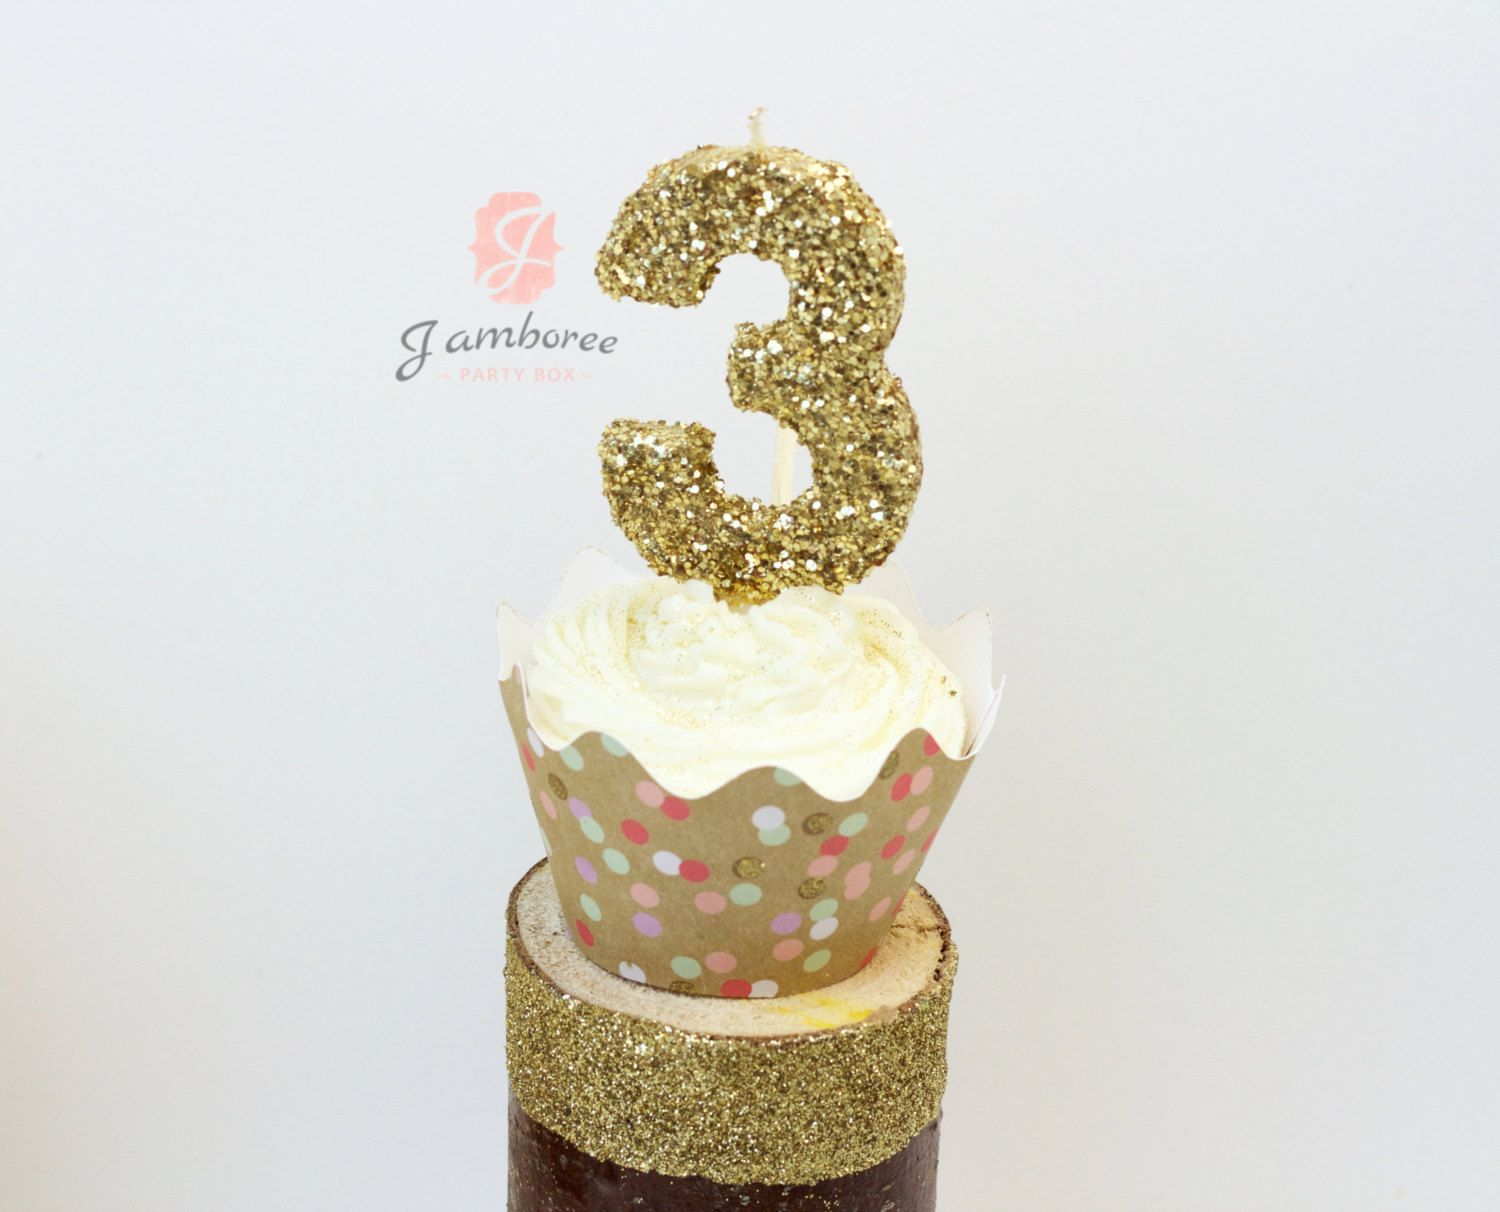 3 Glitter Number Birthday Candle Giant Third Large Gold Or Pink Three 550 USD By